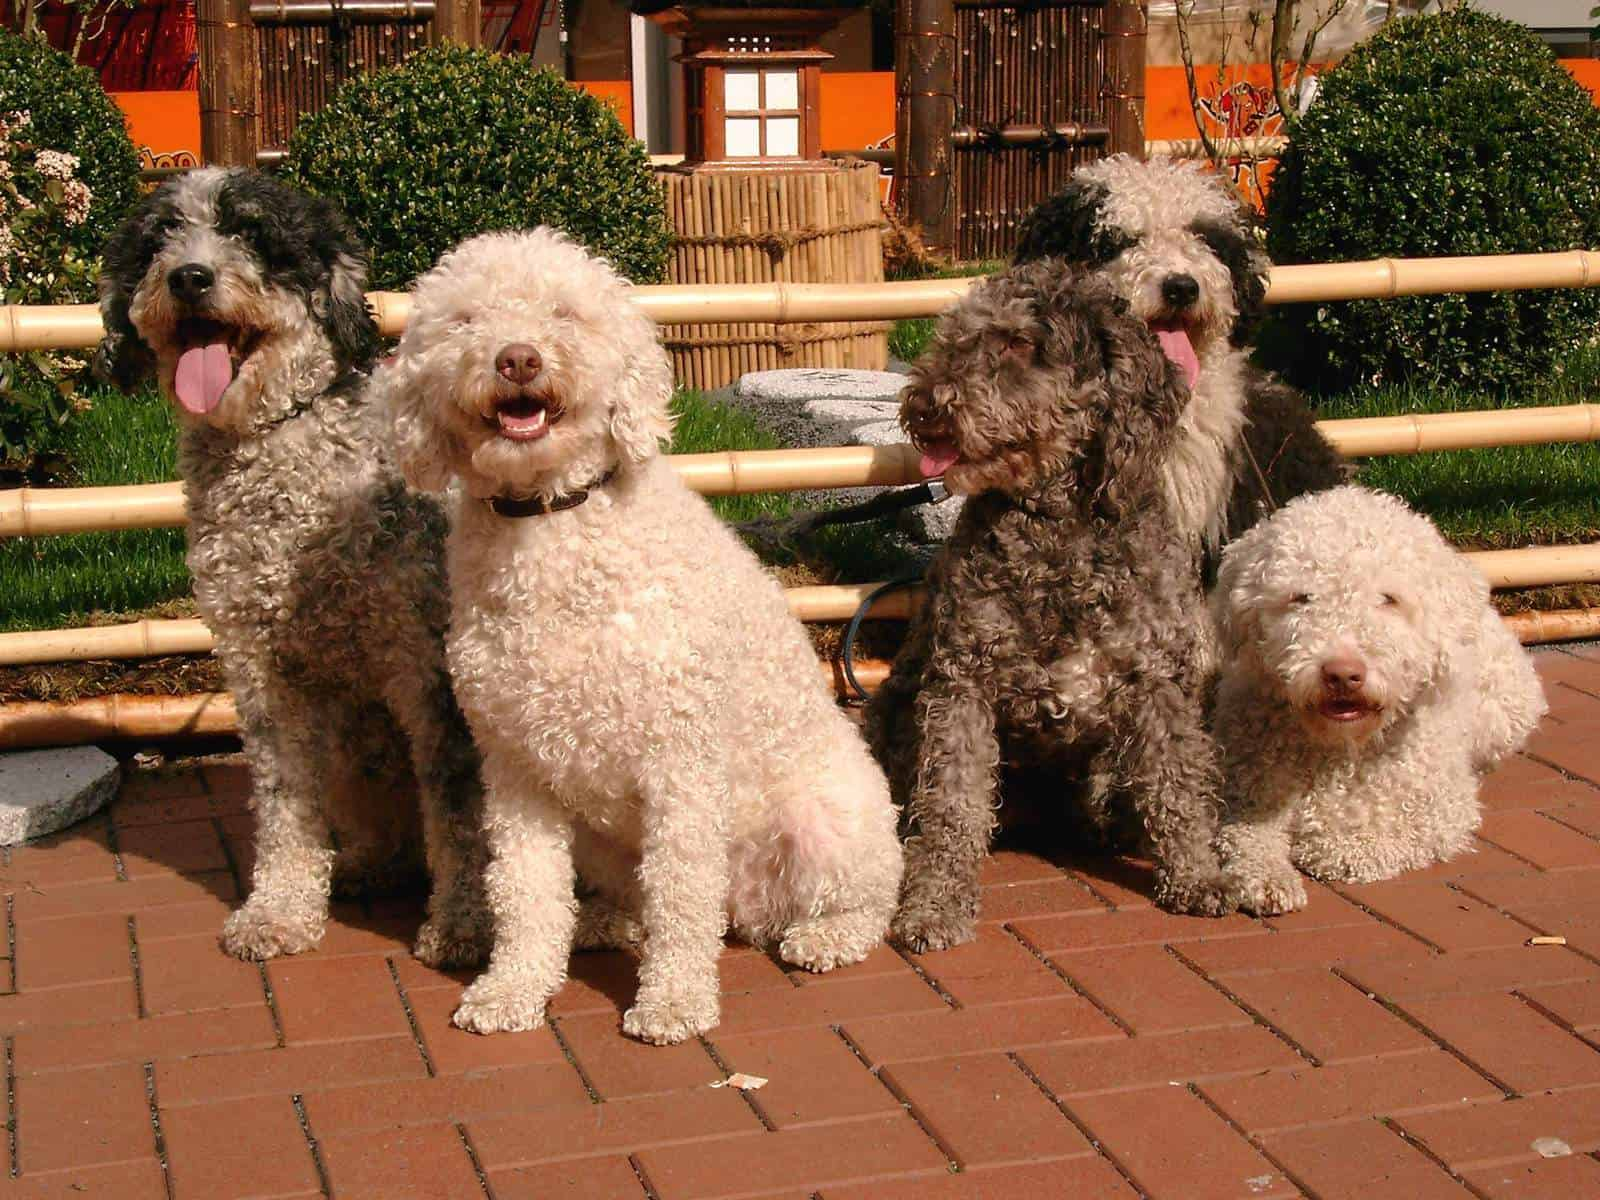 A group of Spanish Water Dogs sitting on the floor